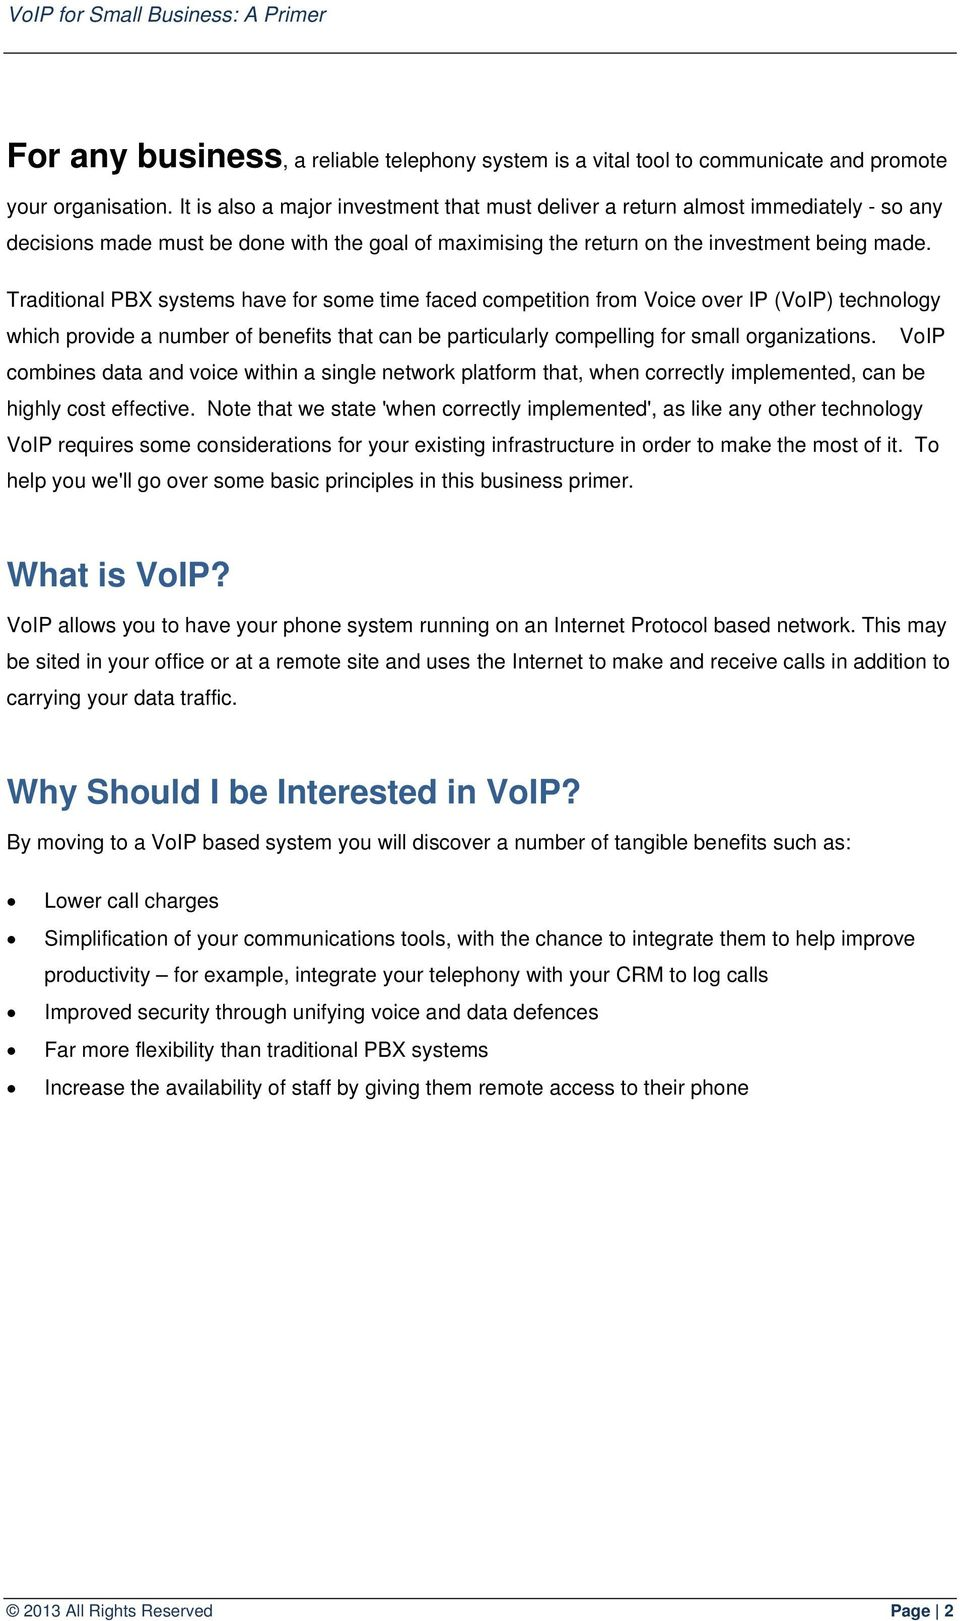 Traditional PBX systems have for some time faced competition from Voice over IP (VoIP) technology which provide a number of benefits that can be particularly compelling for small organizations.